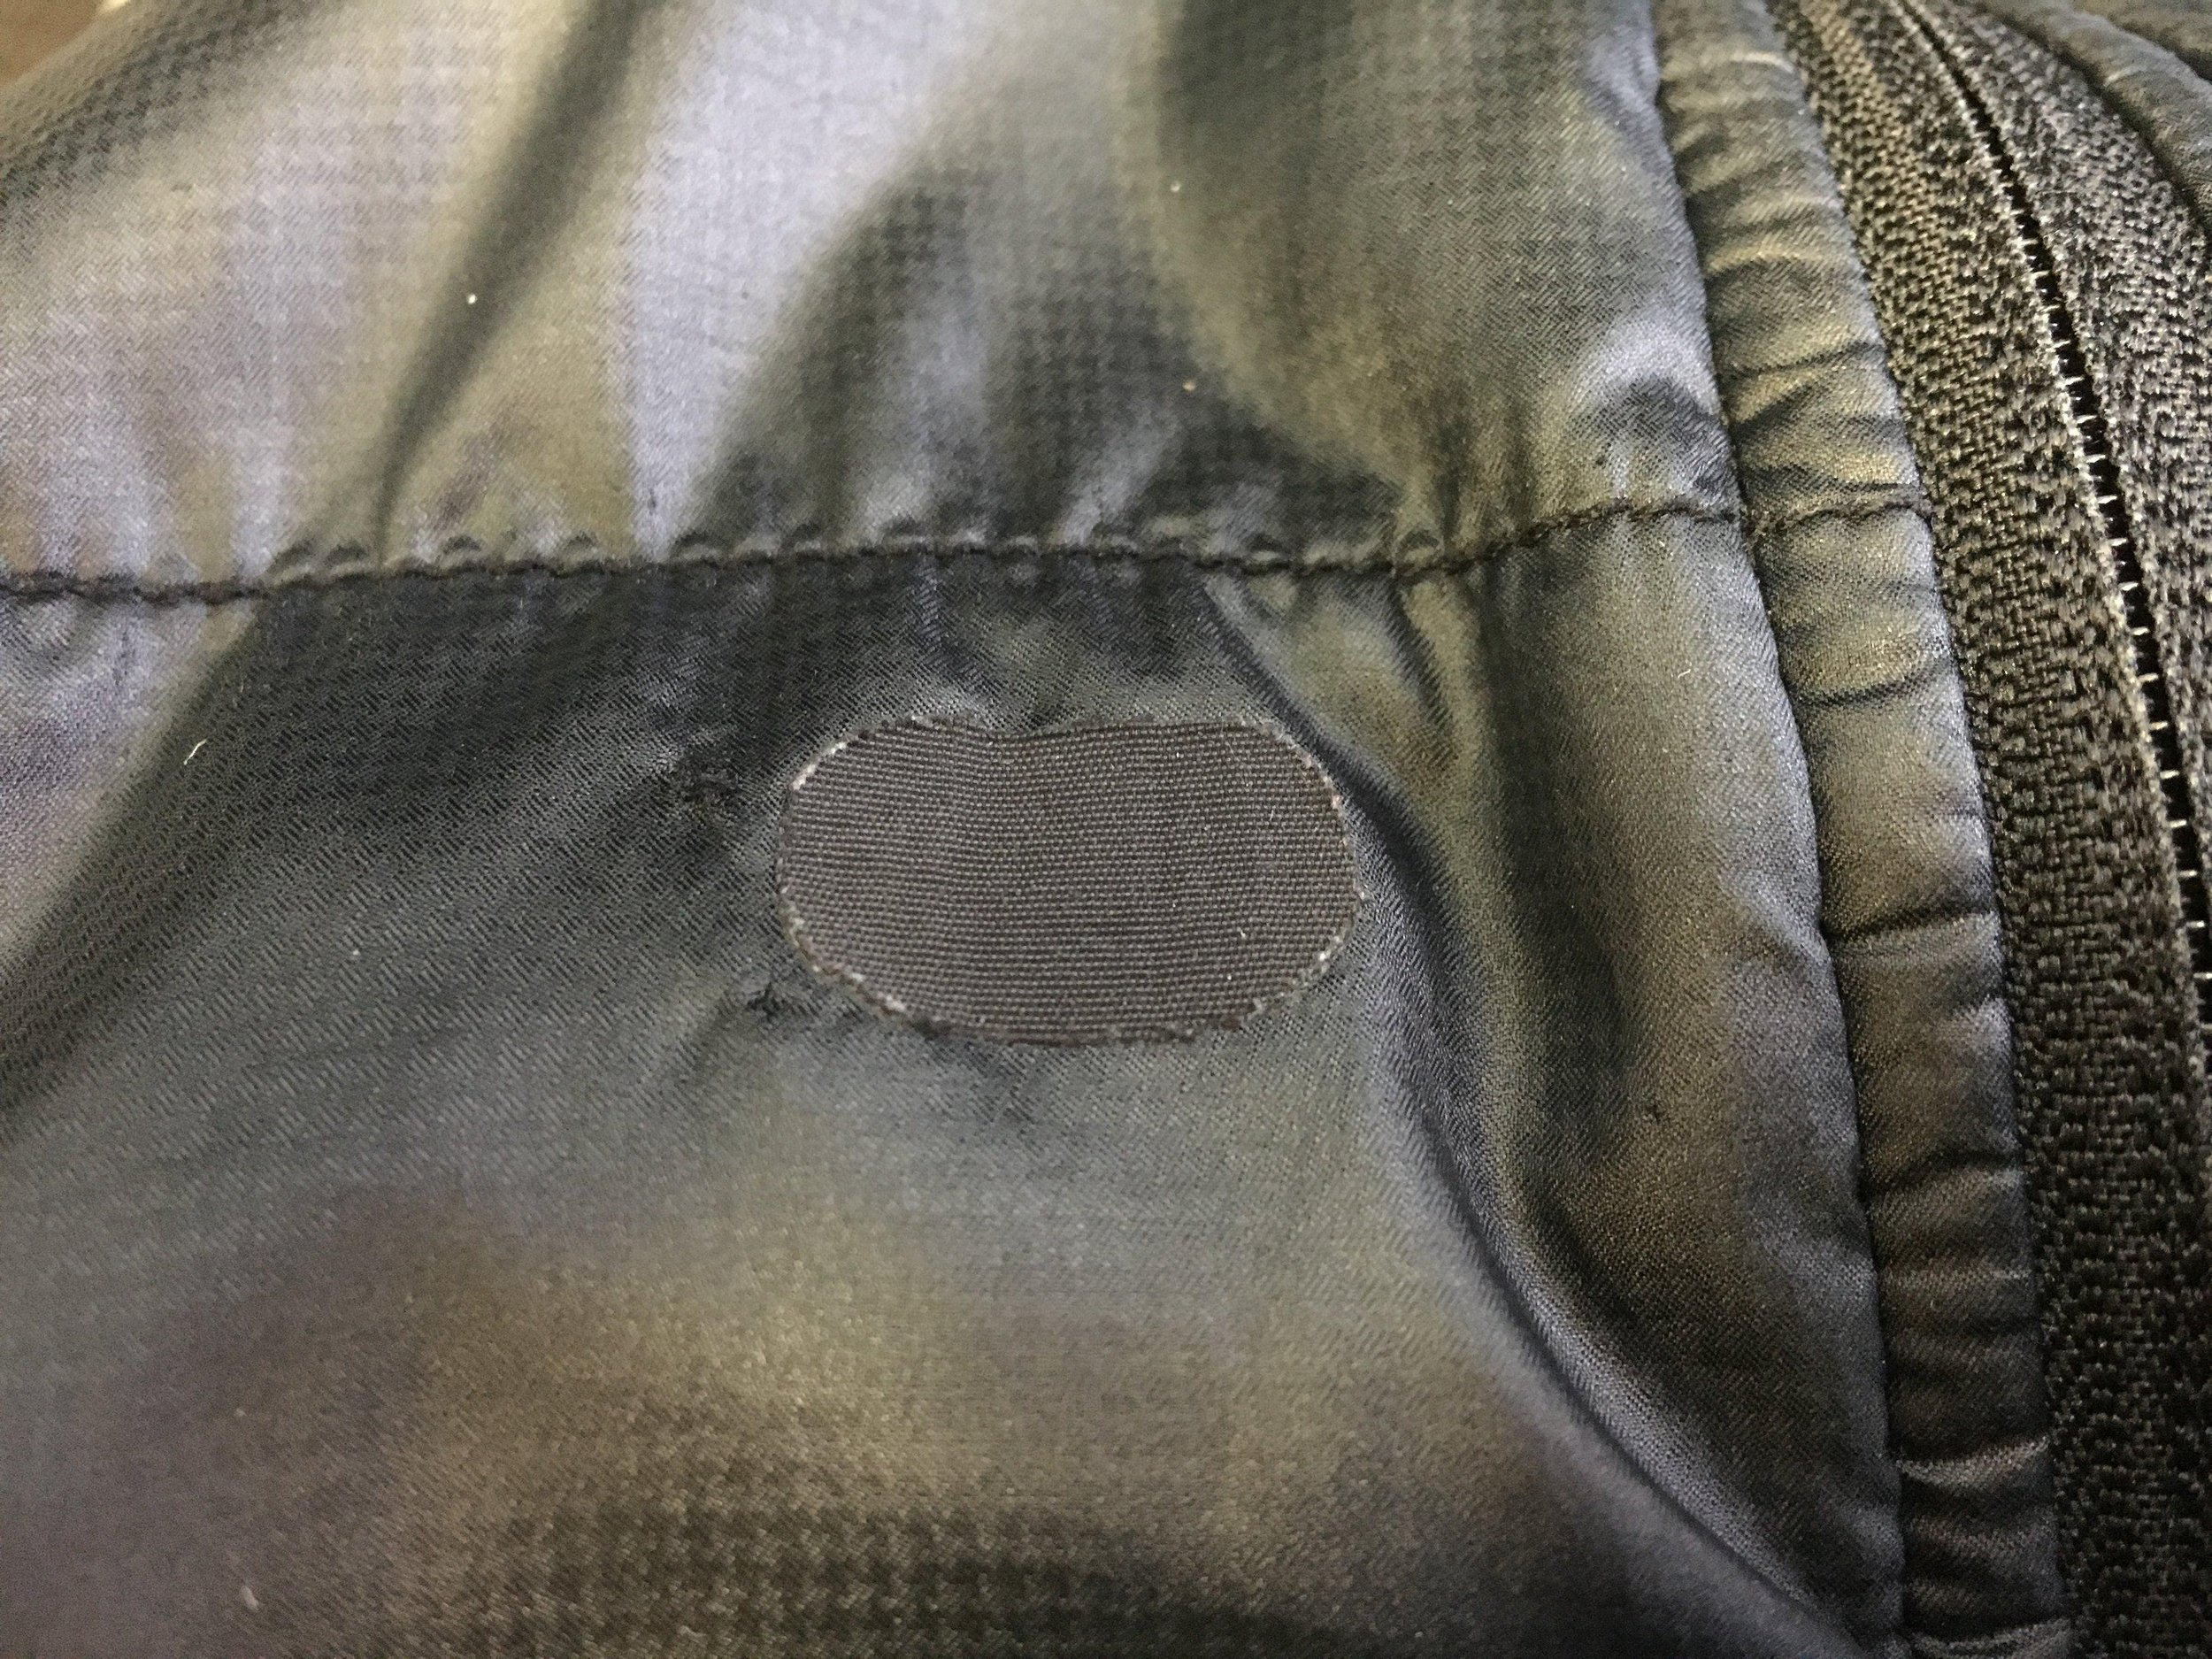 My vest was the unfortunate victim of a cat bathing incident